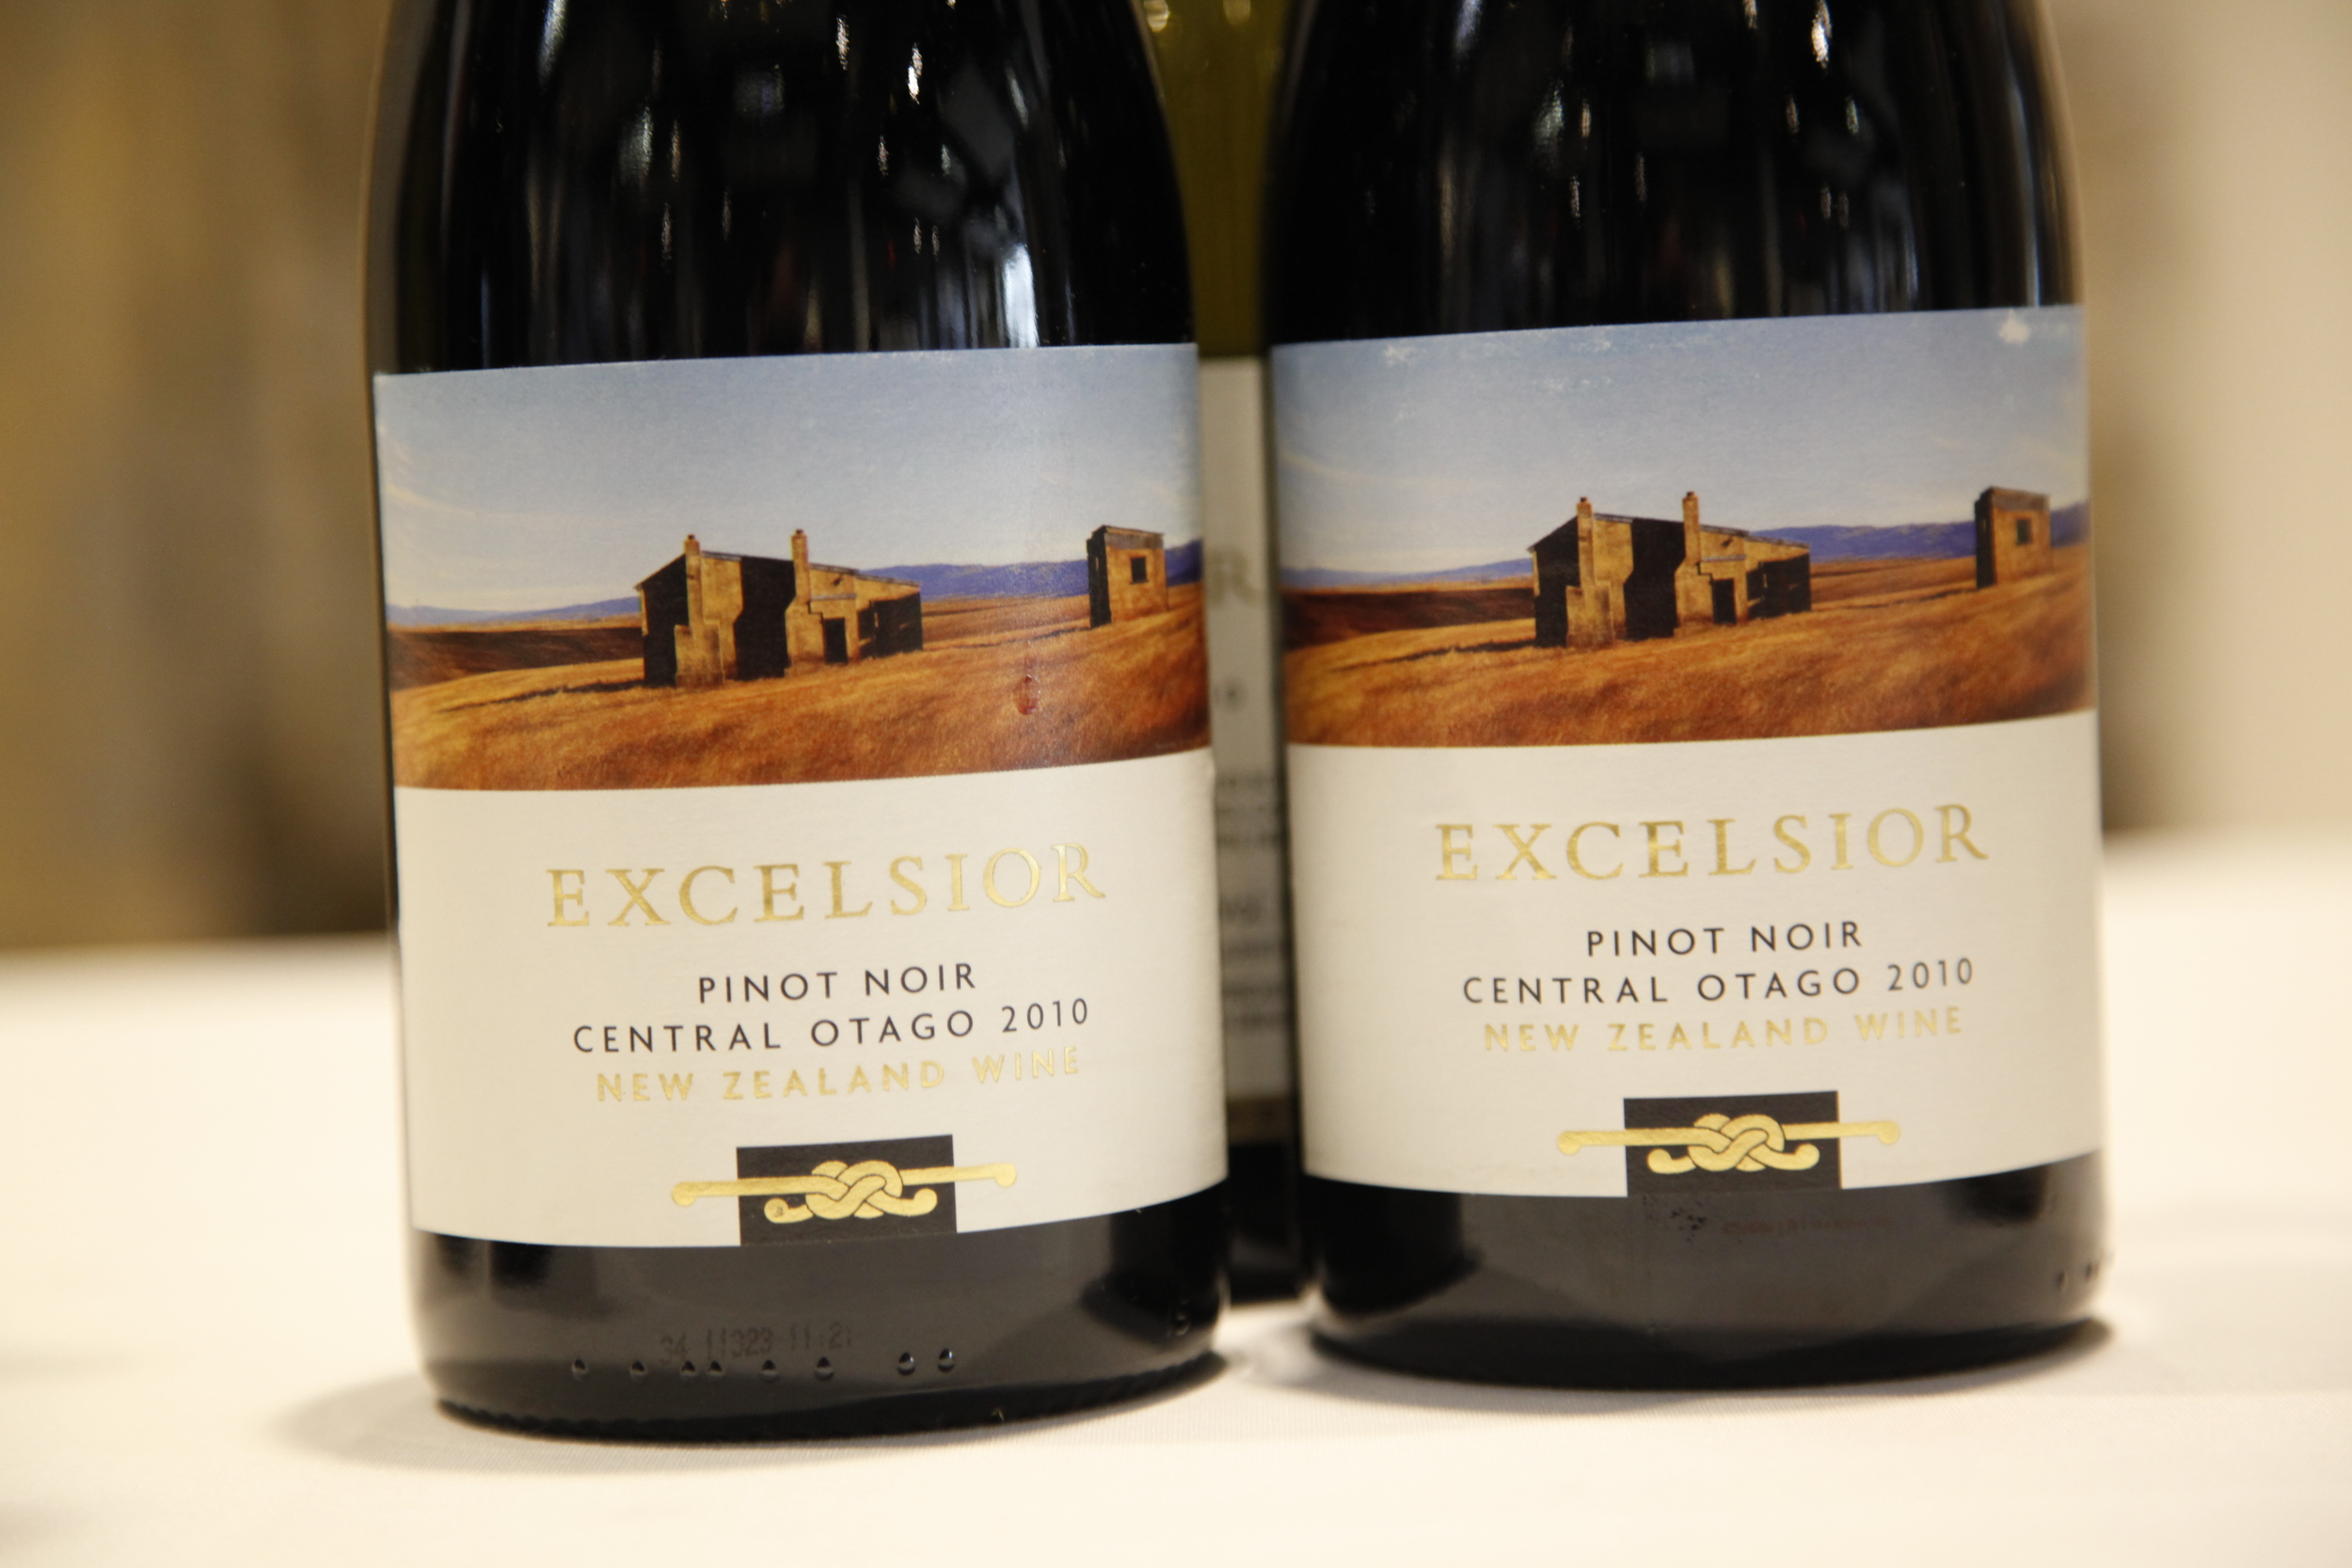 Carrick's top Pinot Noir Cuvee from Central Otago, New Zealand.